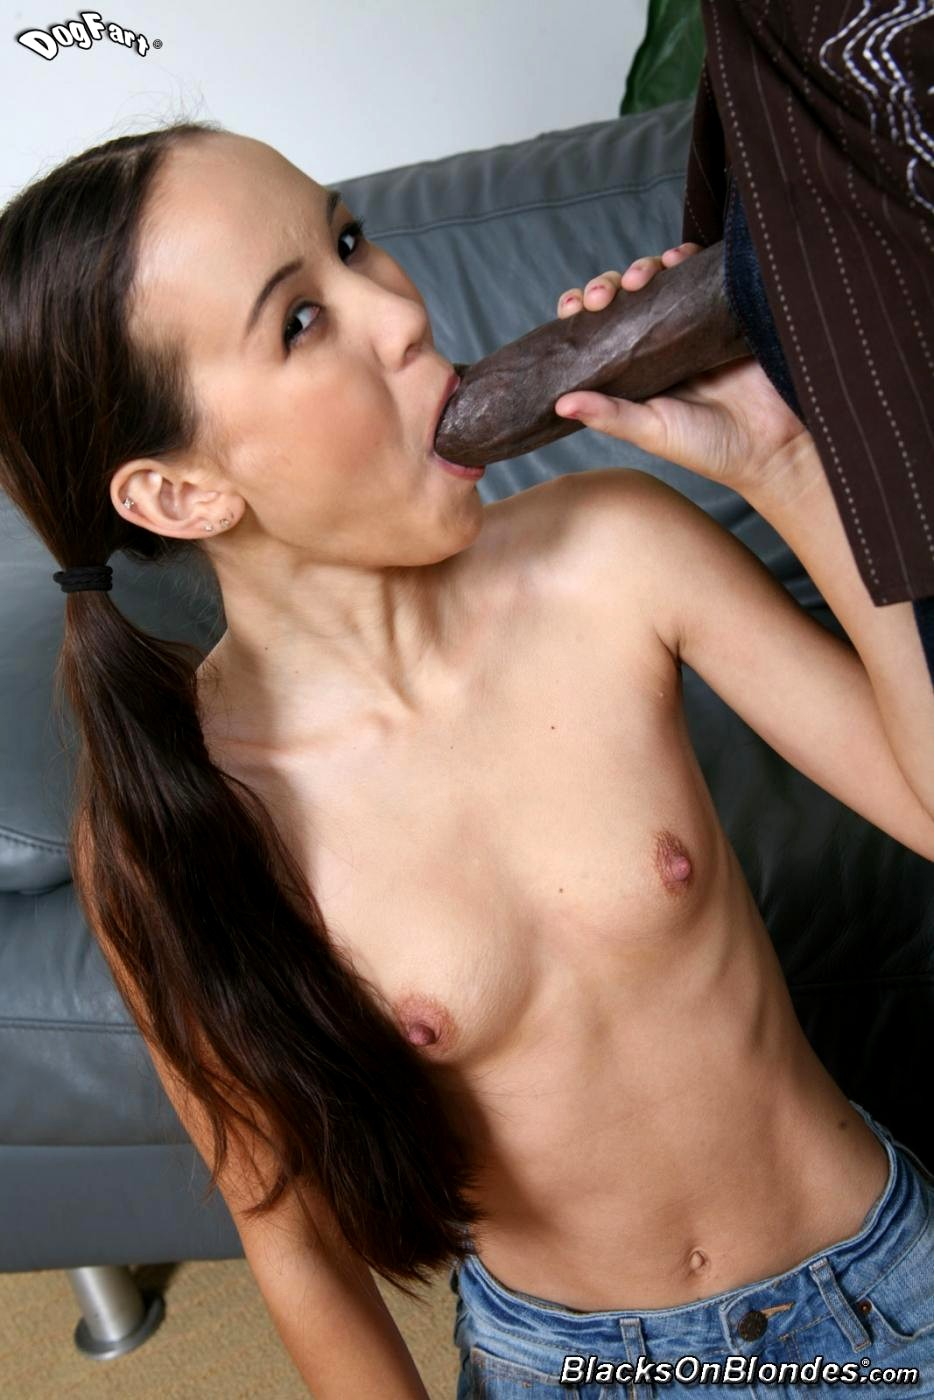 girl playing with dildo gif